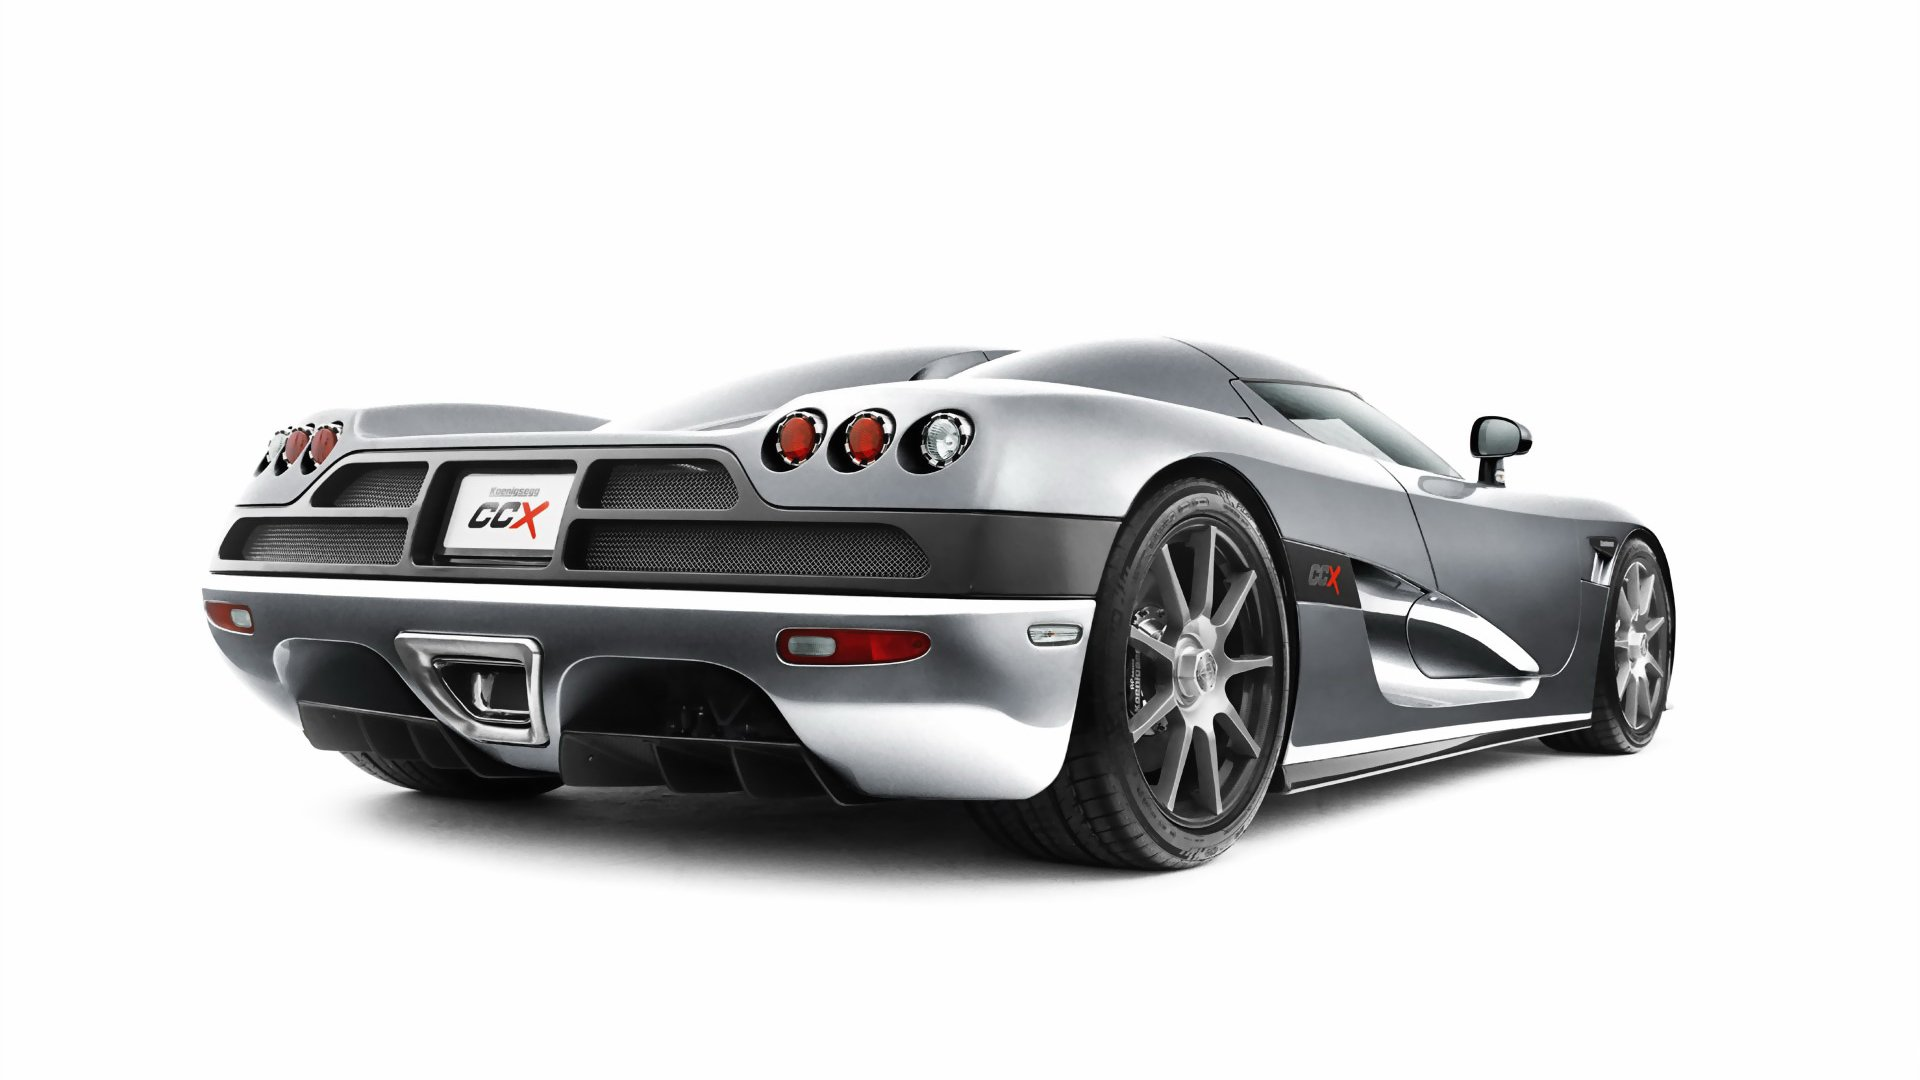 Cool Car Wallpaper 1080p HD Resolutions Car Wallpapers 1920x1080